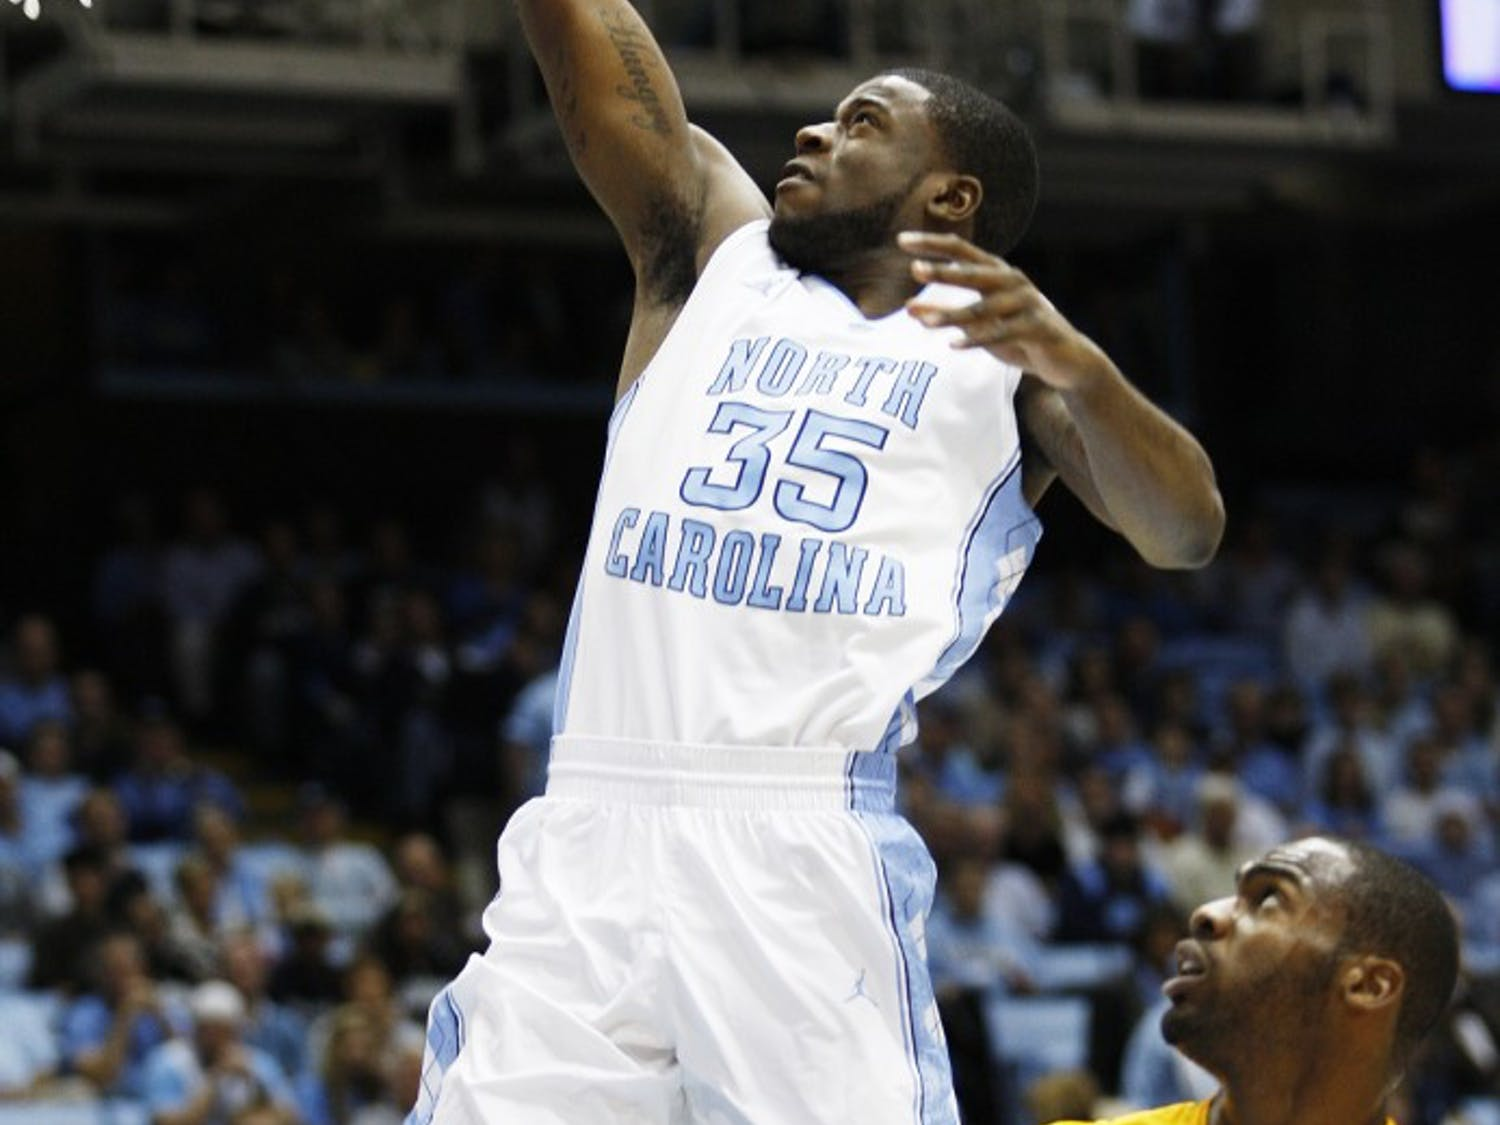 The North Carolina Tar Heels hosted the Long Beach State 49ers at the Dean E. Smith Center on Saturday, Dec. 10, 2011.